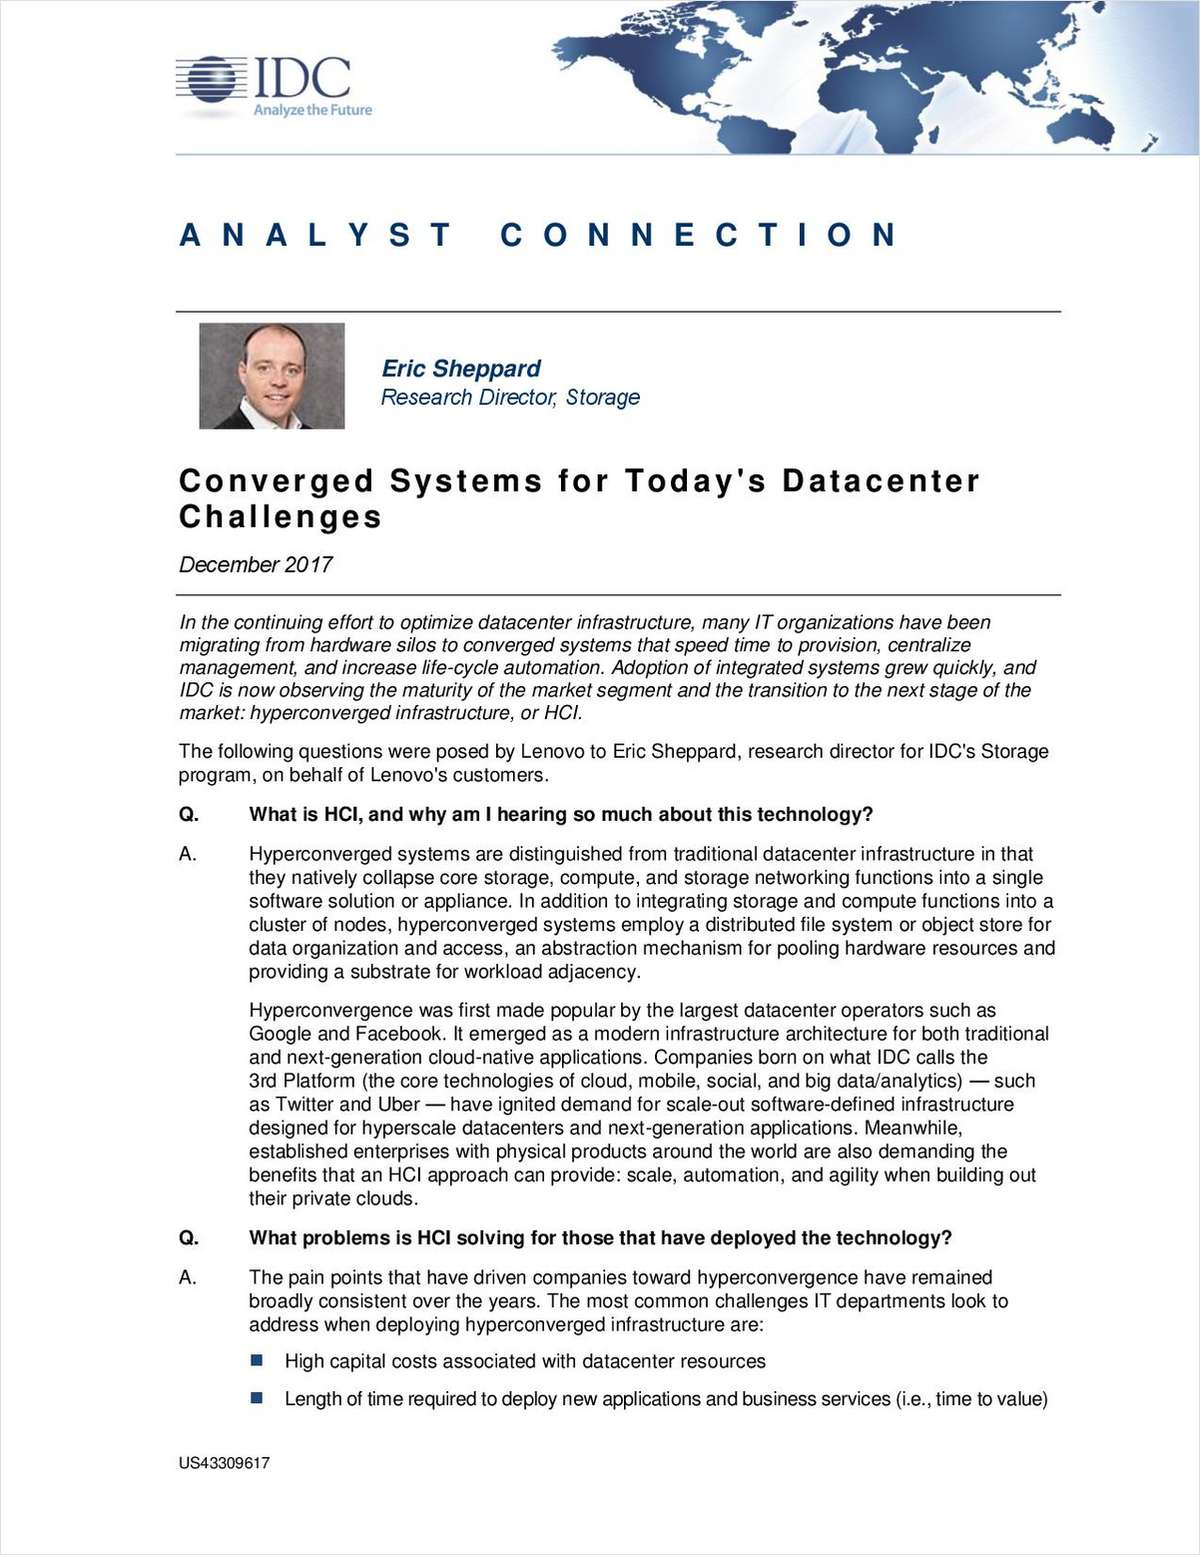 Hyperconvergence: Meeting Today's And Tomorrow's Datacenter Challenges